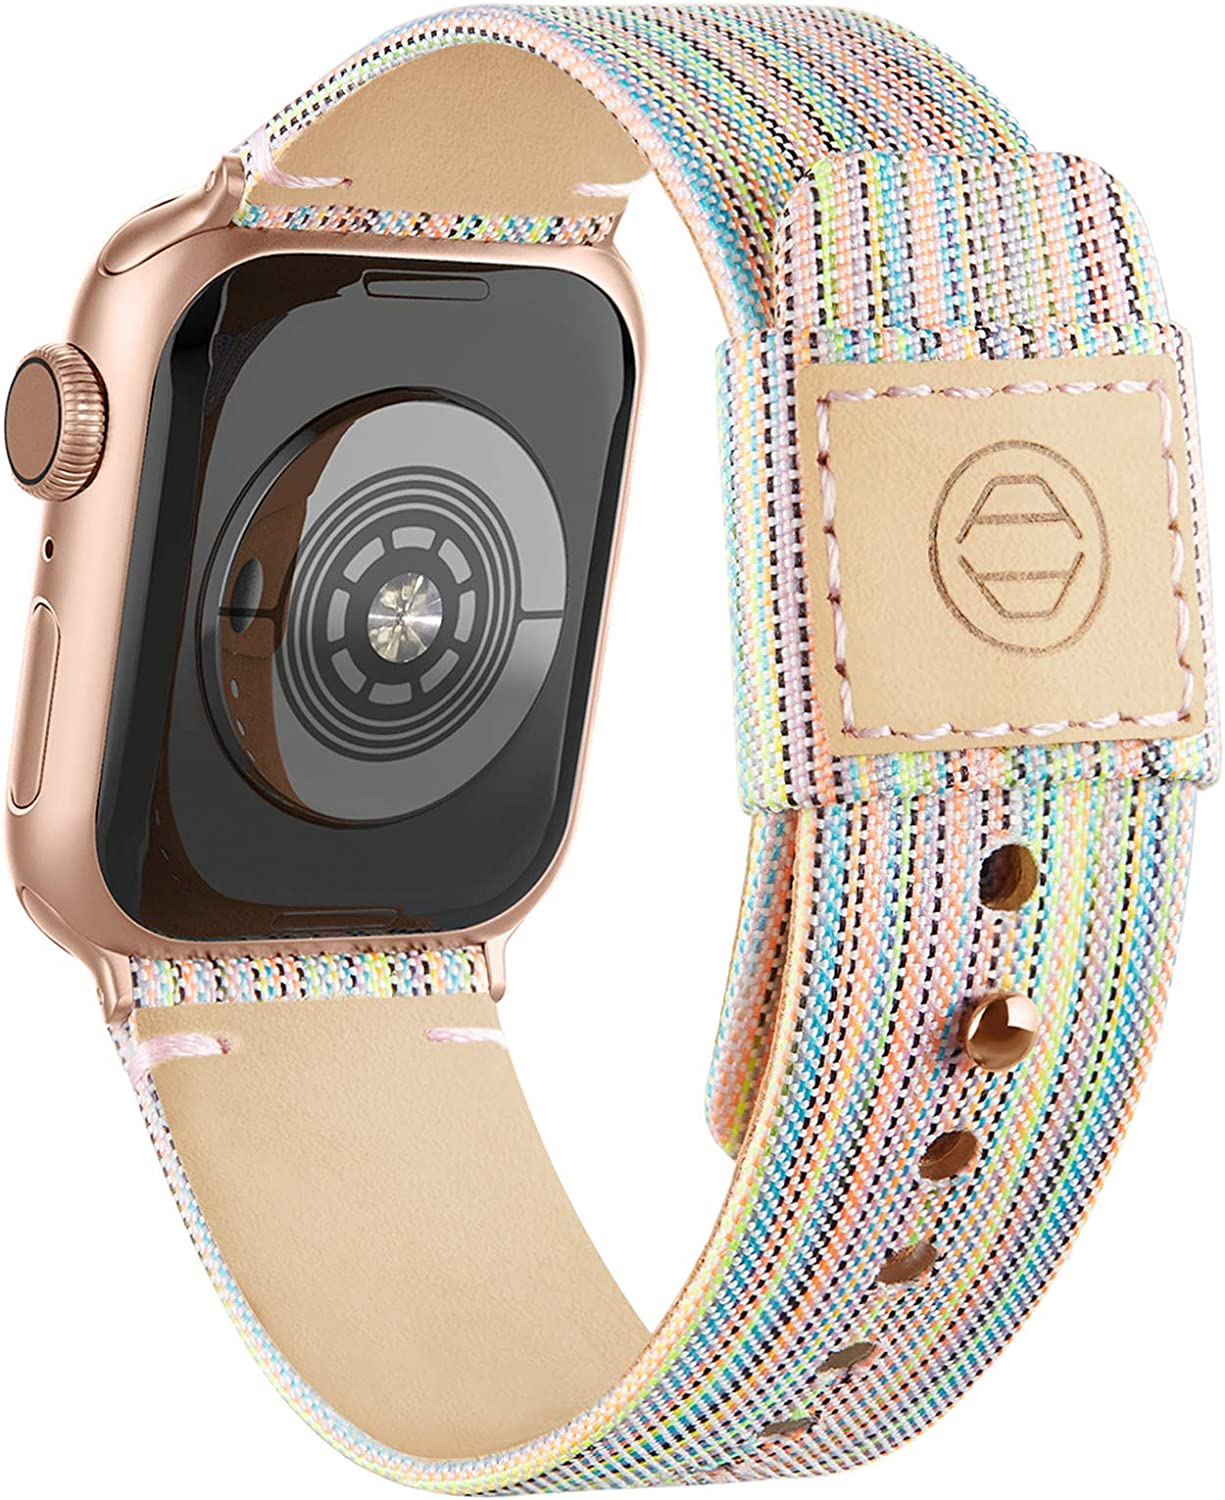 Adepoy Fabric Cloth Bands Compatible with Apple Watch 44mm 42mm 40mm 38mm,Canvas Strap with Soft Genuine Leather Lining and Snap Button for Apple iwatch Series 6/5/4/3/2/1 SE,Rainbow 38/40mm